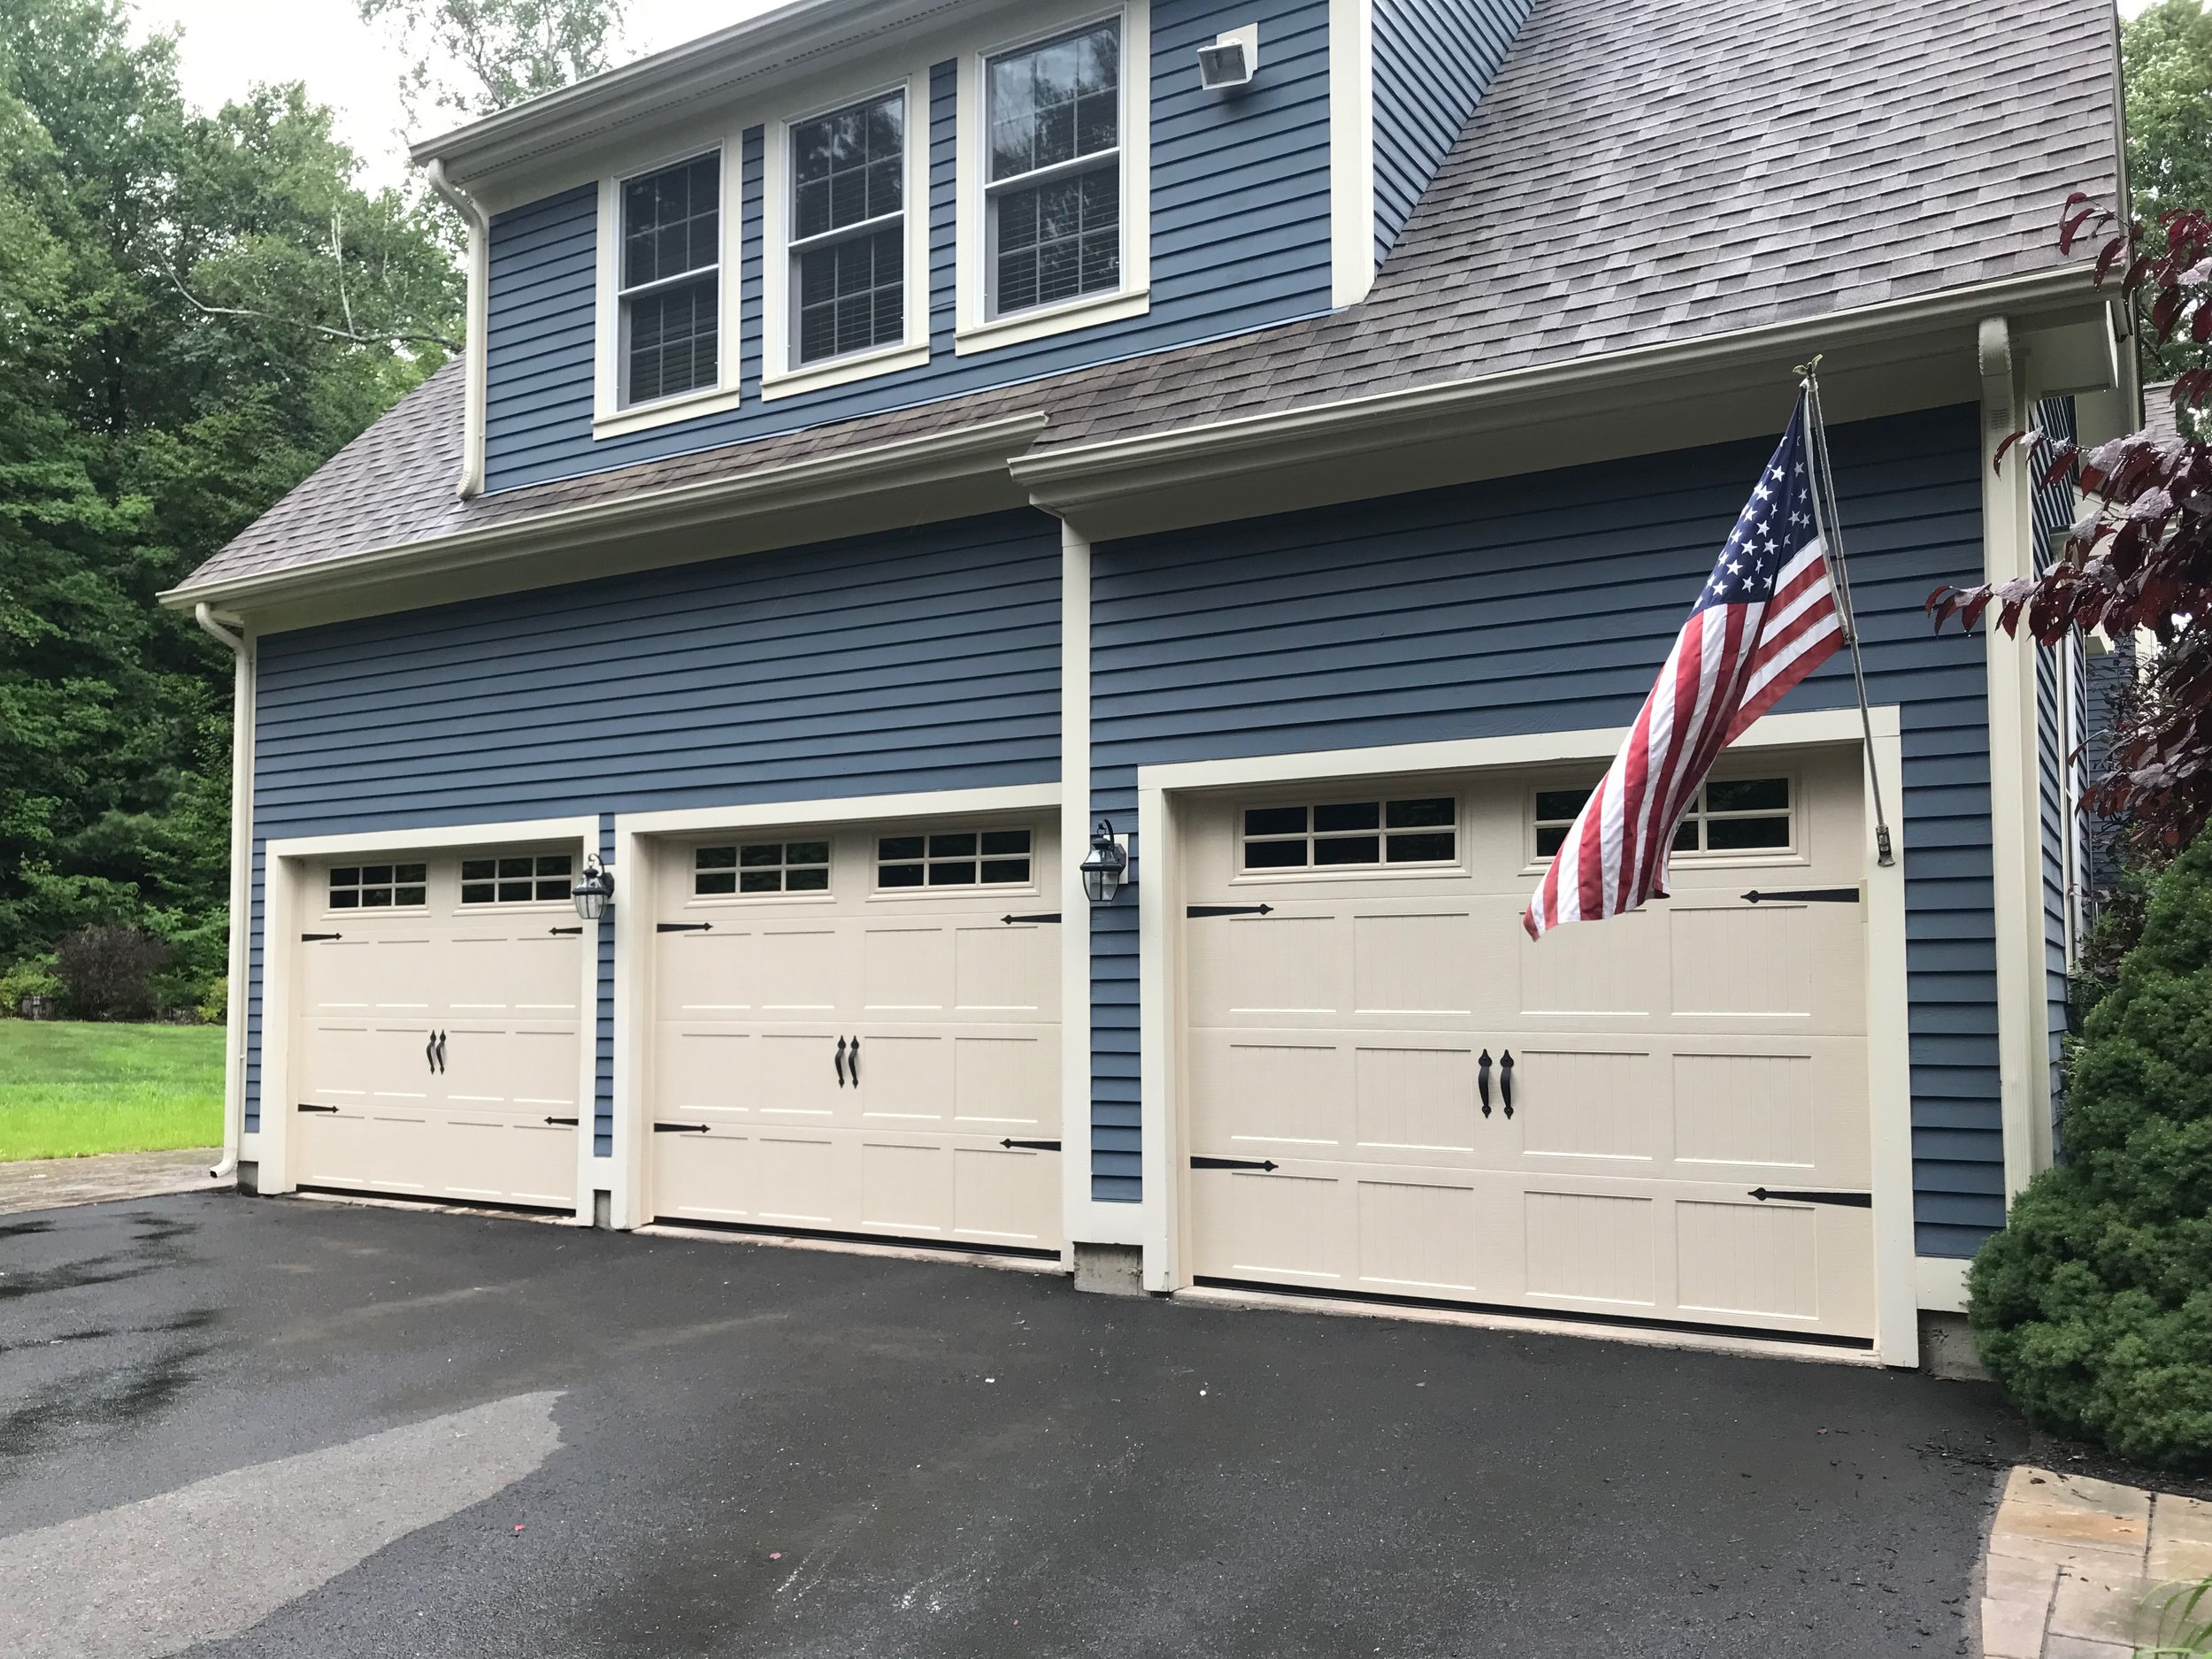 A new garage door can dramatically enhance the curb appeal of your home while increasing your safety, security and energy efficiency.